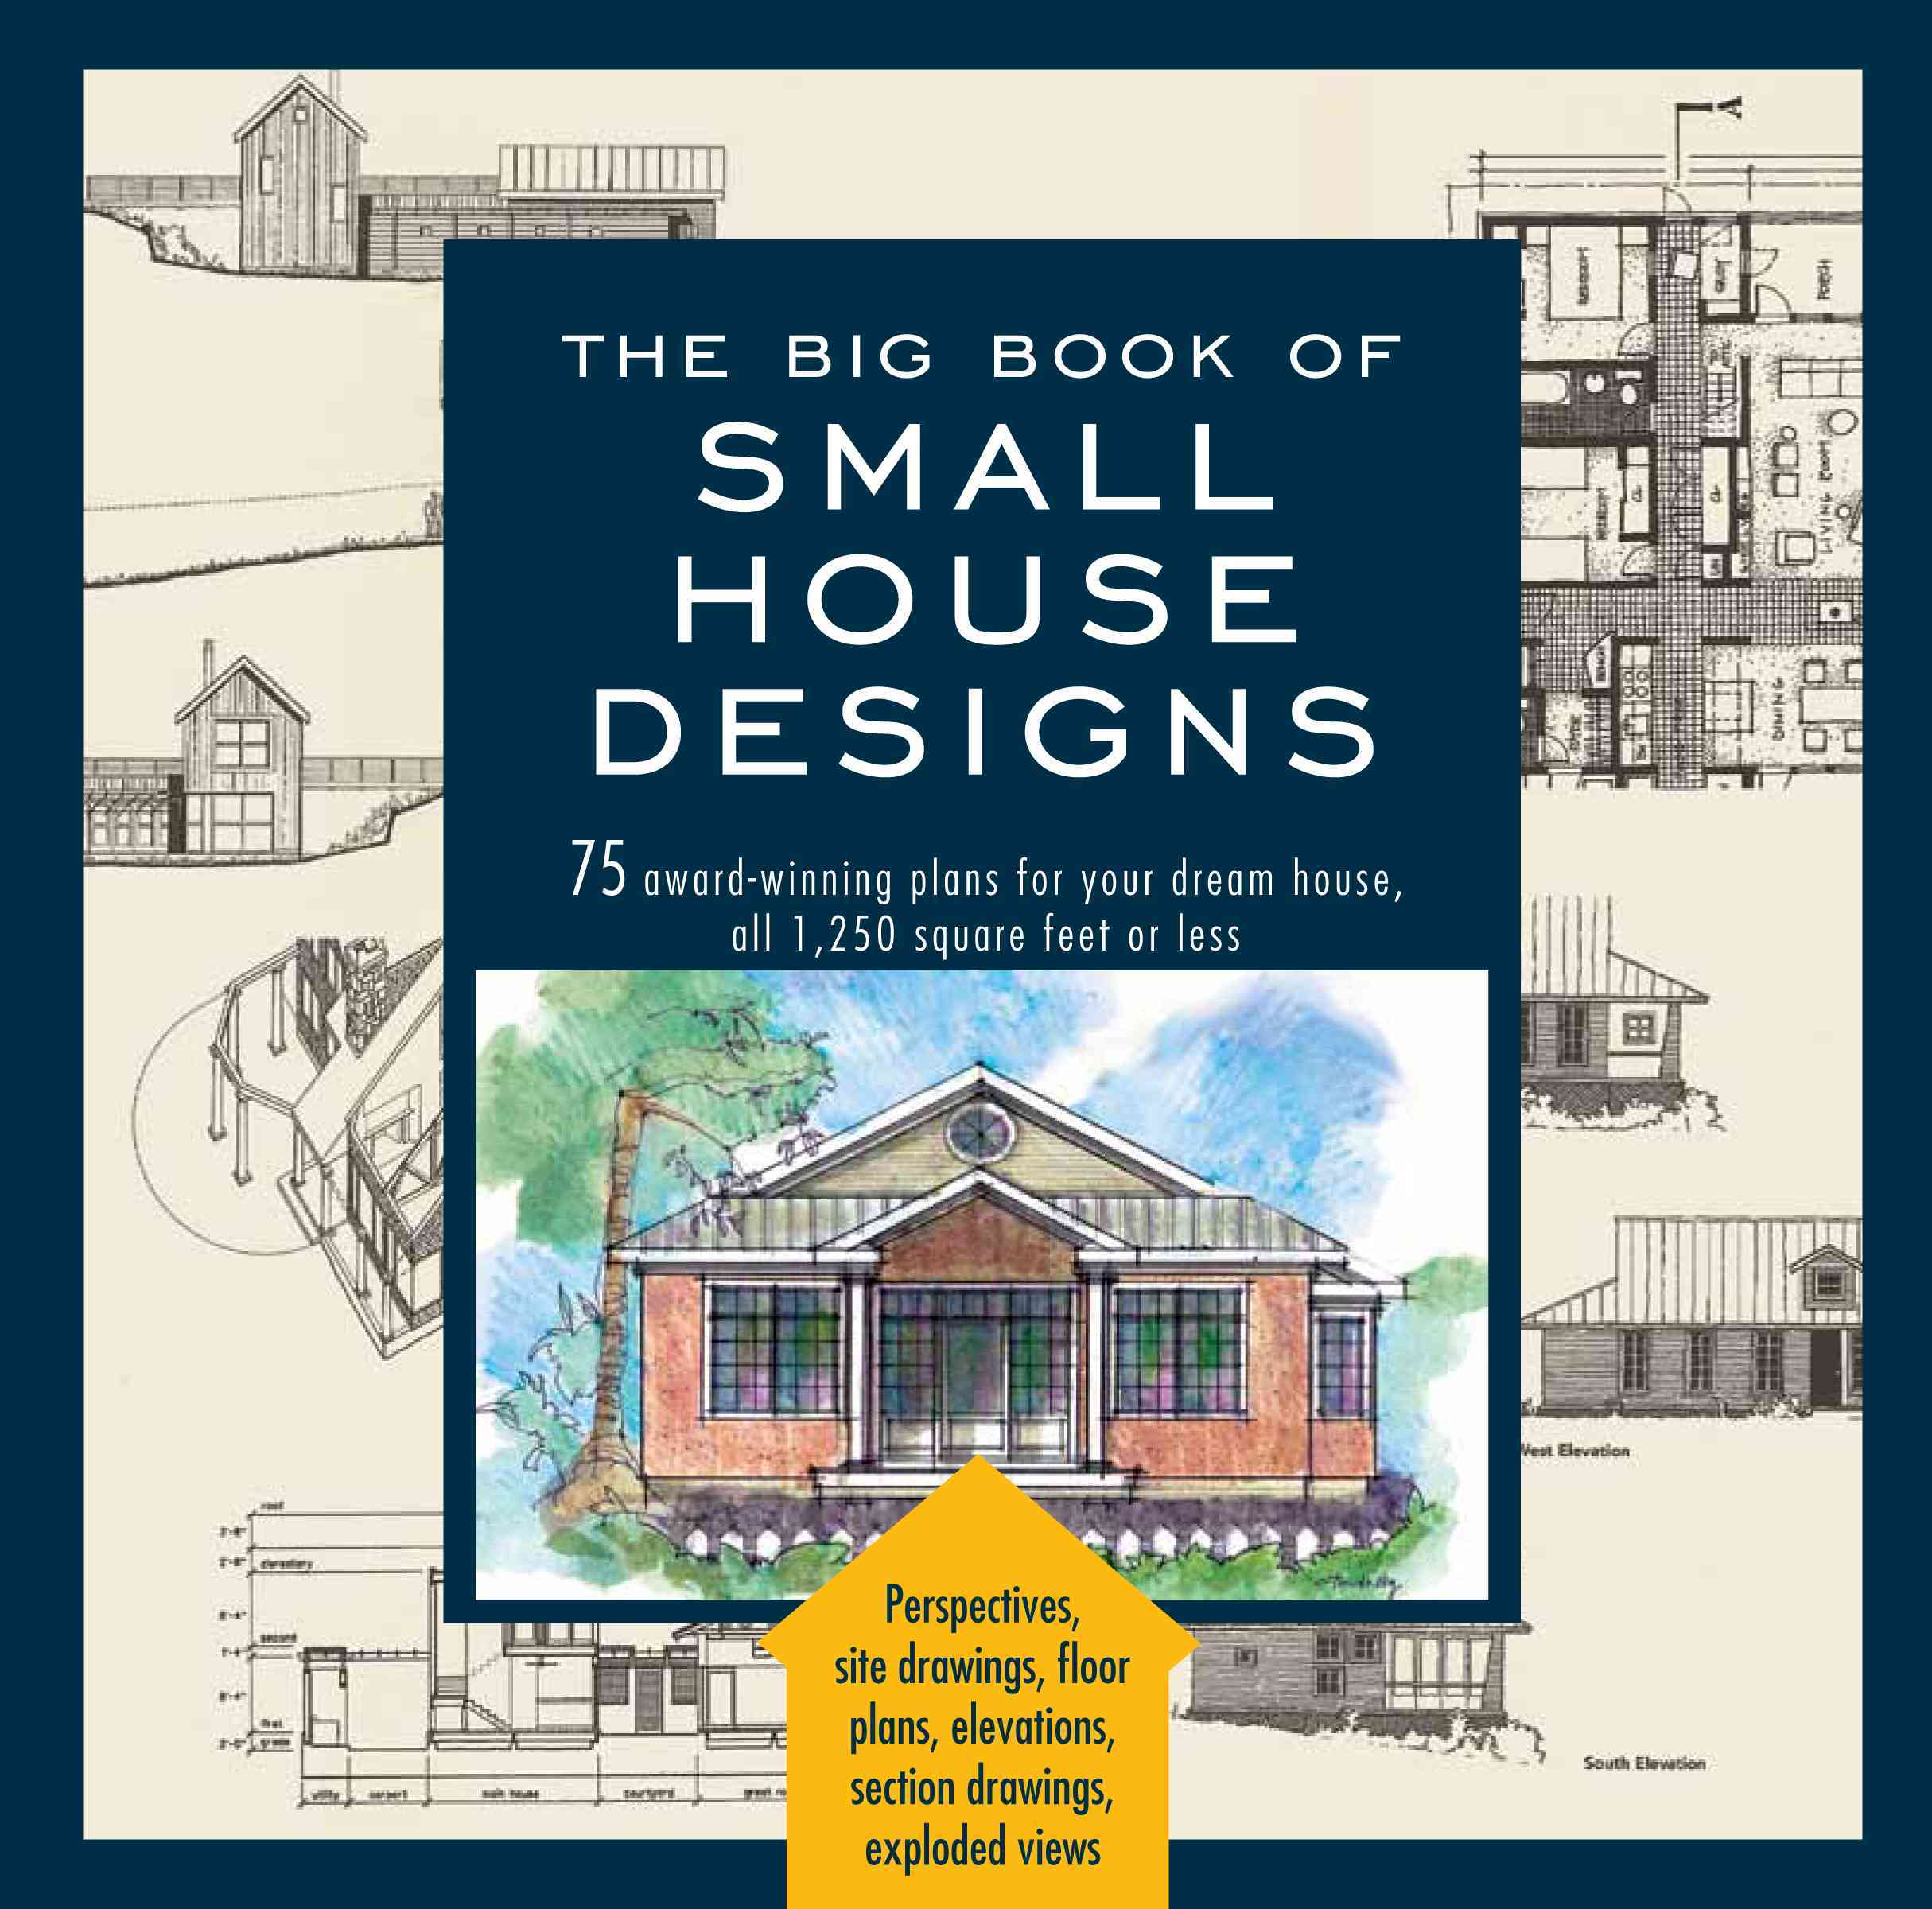 The Big Book of Small House Designs: 75 Award-Winning Plans for Your Dream House, 1,250 Square Feet or Less (Paperback)